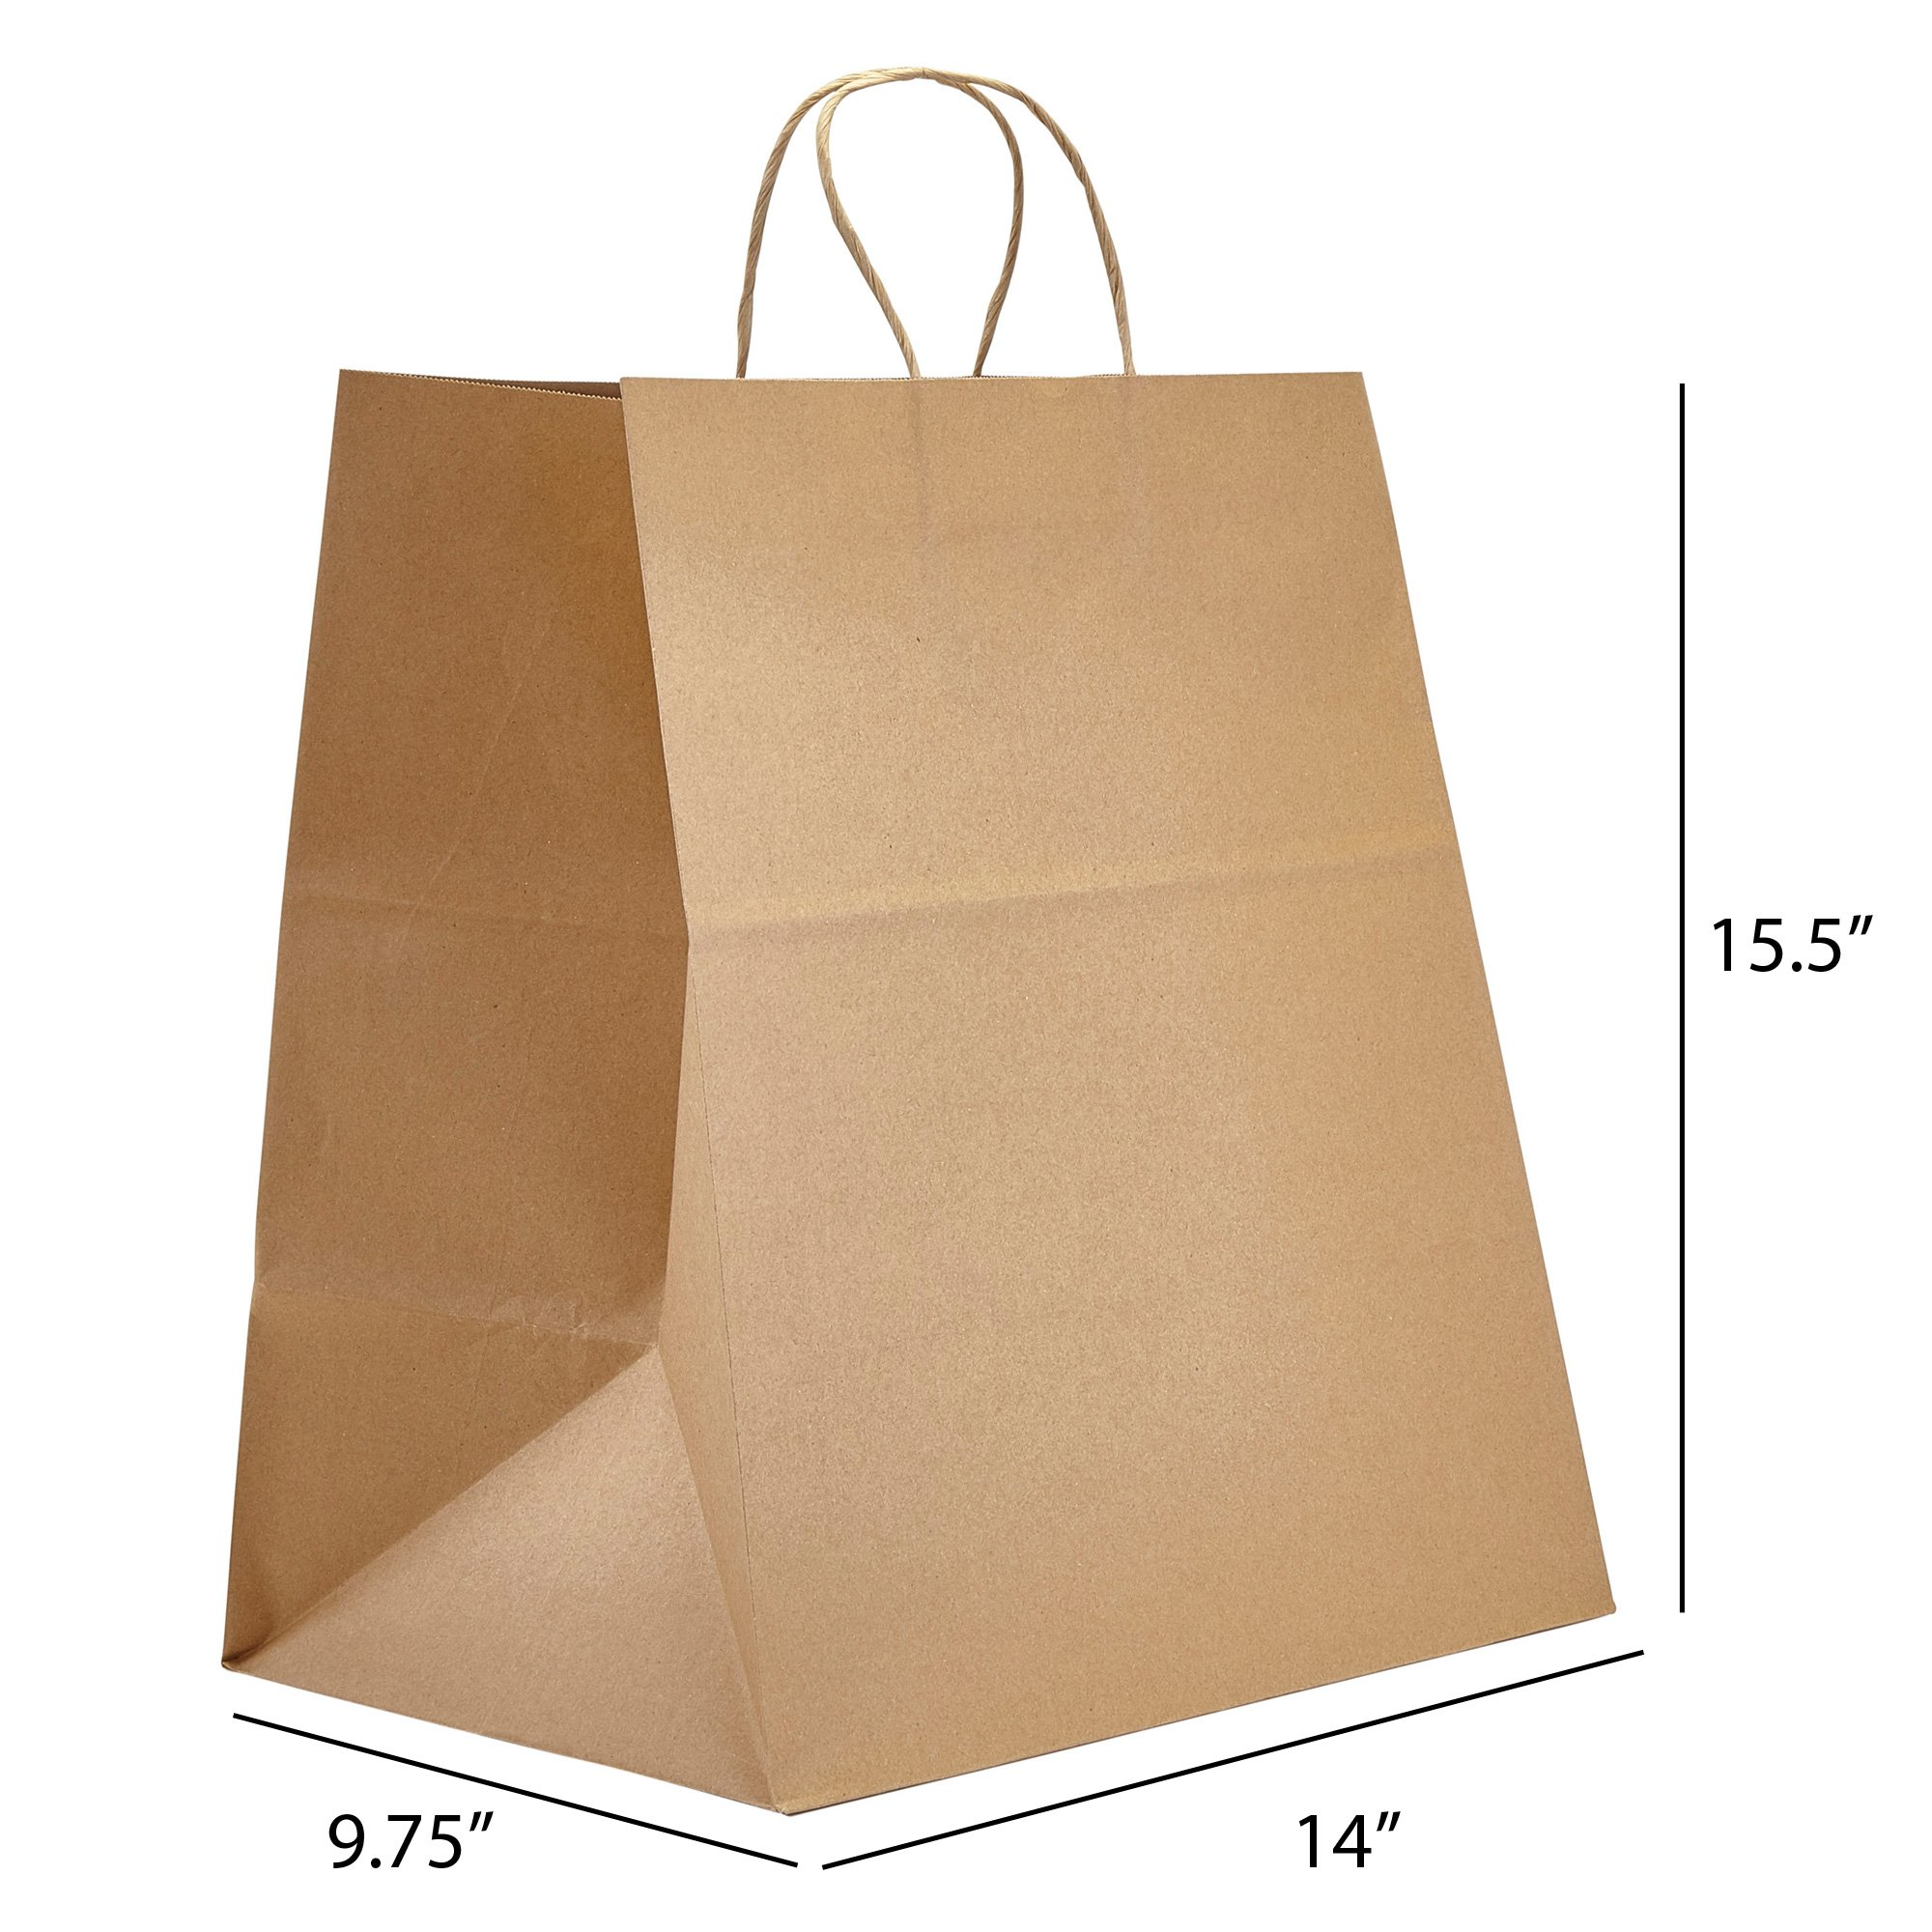 PTP - 14'' x 9.75'' x 15.5'' Natural Kraft Paper Gift Tote Bags - 200 count  Perfect for Birthdays, Weddings, Holidays and All Occasions   White or Natural Colors   Multiple Sizes by Prime Time Packaging Ltd (Image #3)